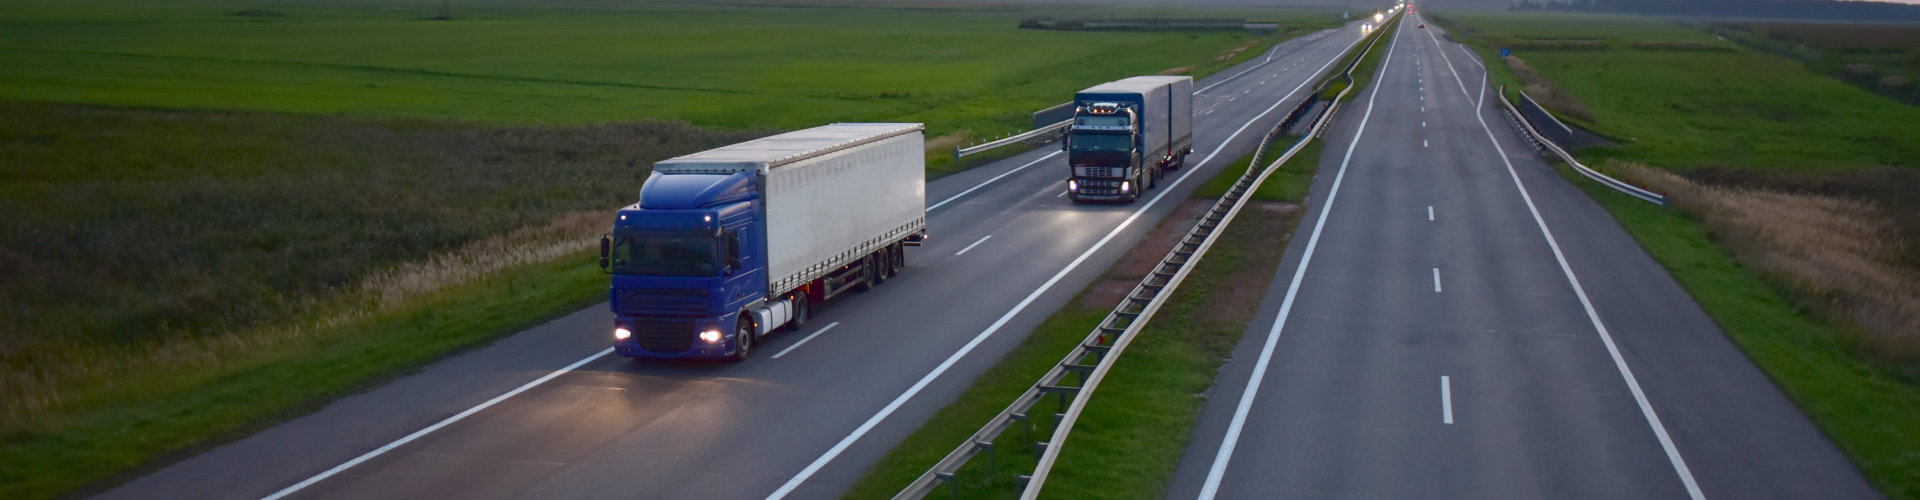 Truck with semi-trailer driving along highway on the sunset background. Goods delivery by roads. Services and Transport logistics. Soft focus, possible granularity.